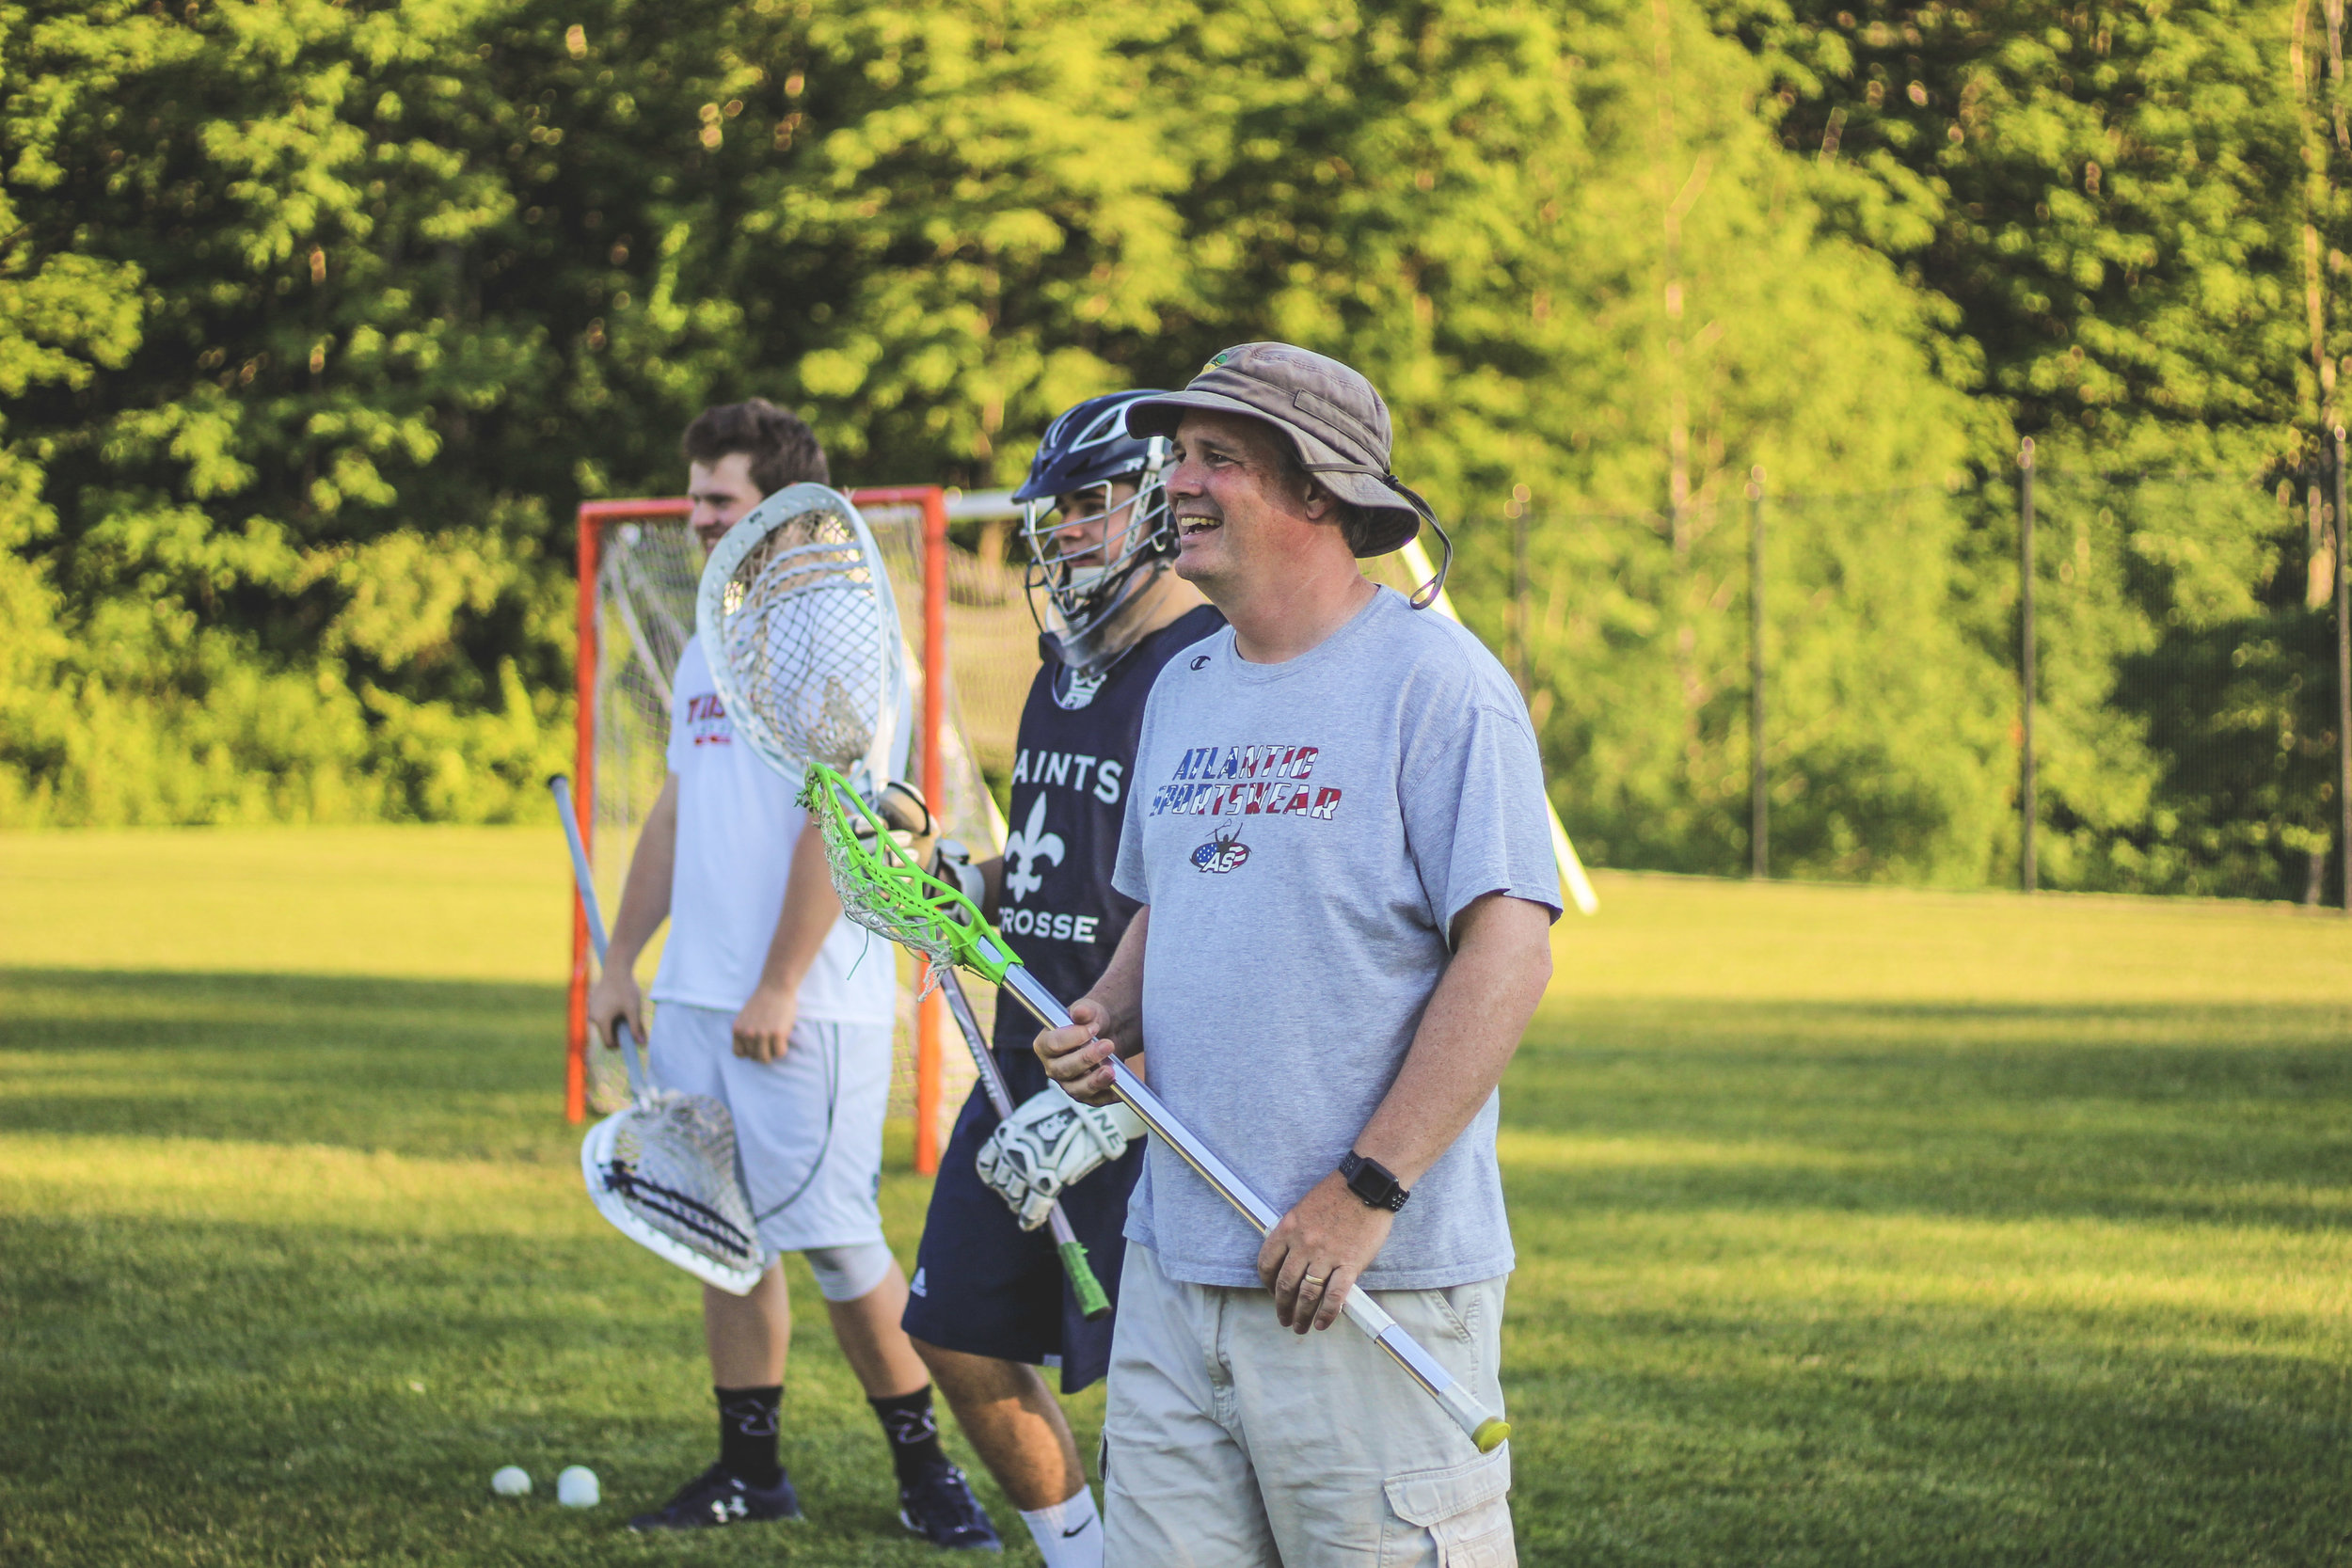 Sean Houlahan, Head Lacrosse Coach at St. Thomas Aquinas High School in Dover, NH, created Houlagan Lacrosse 10 years ago in the hopes of sharing the game he loves with players of ages and levels.